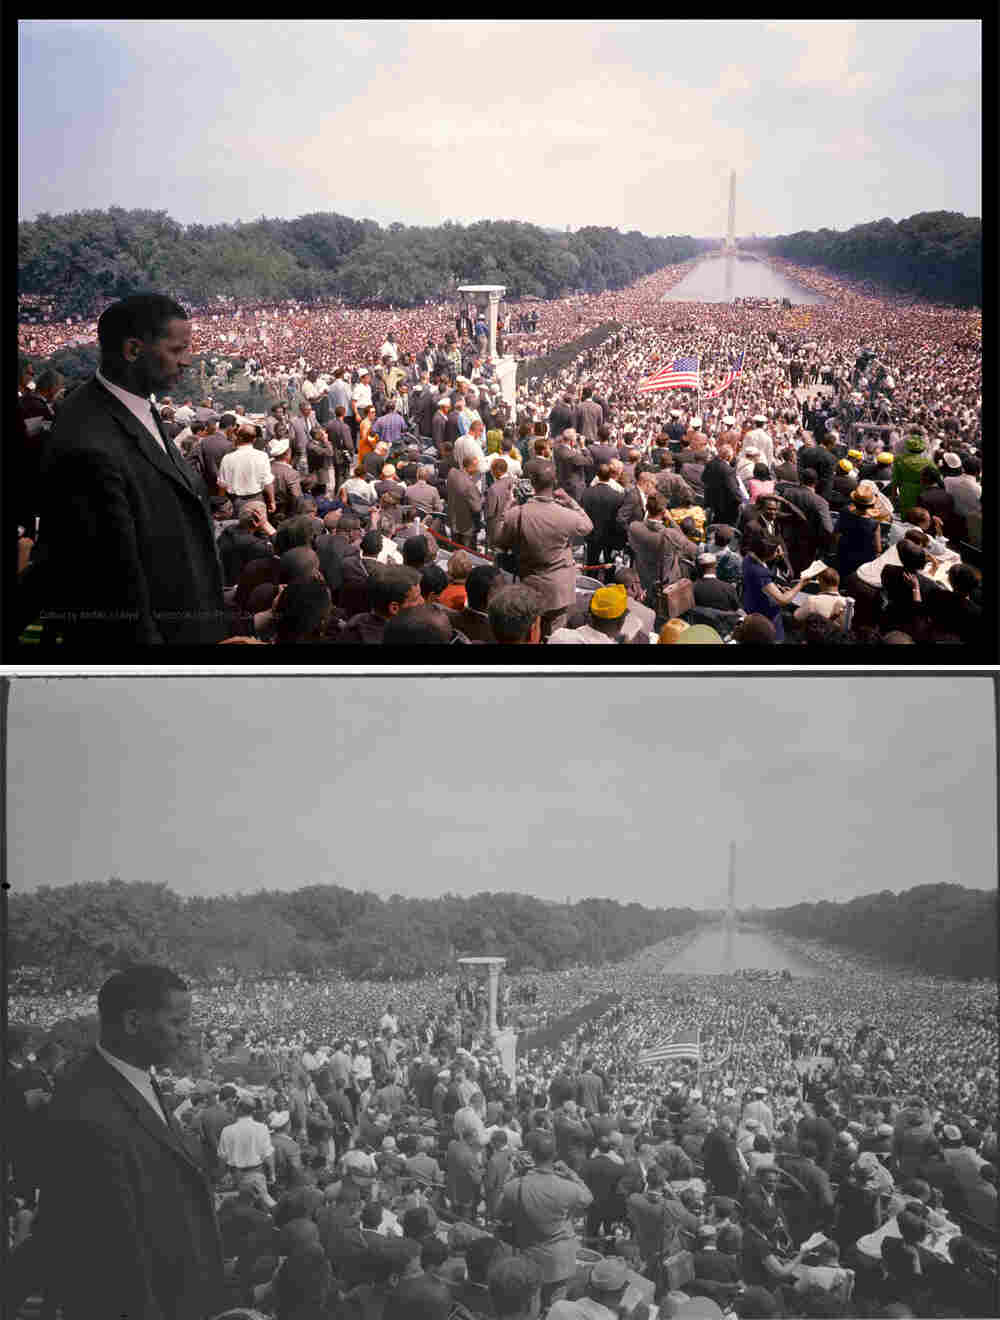 View of the huge crowd from the Lincoln Memorial to the Washington Monument. Colorized by Jordan J. Lloyd.